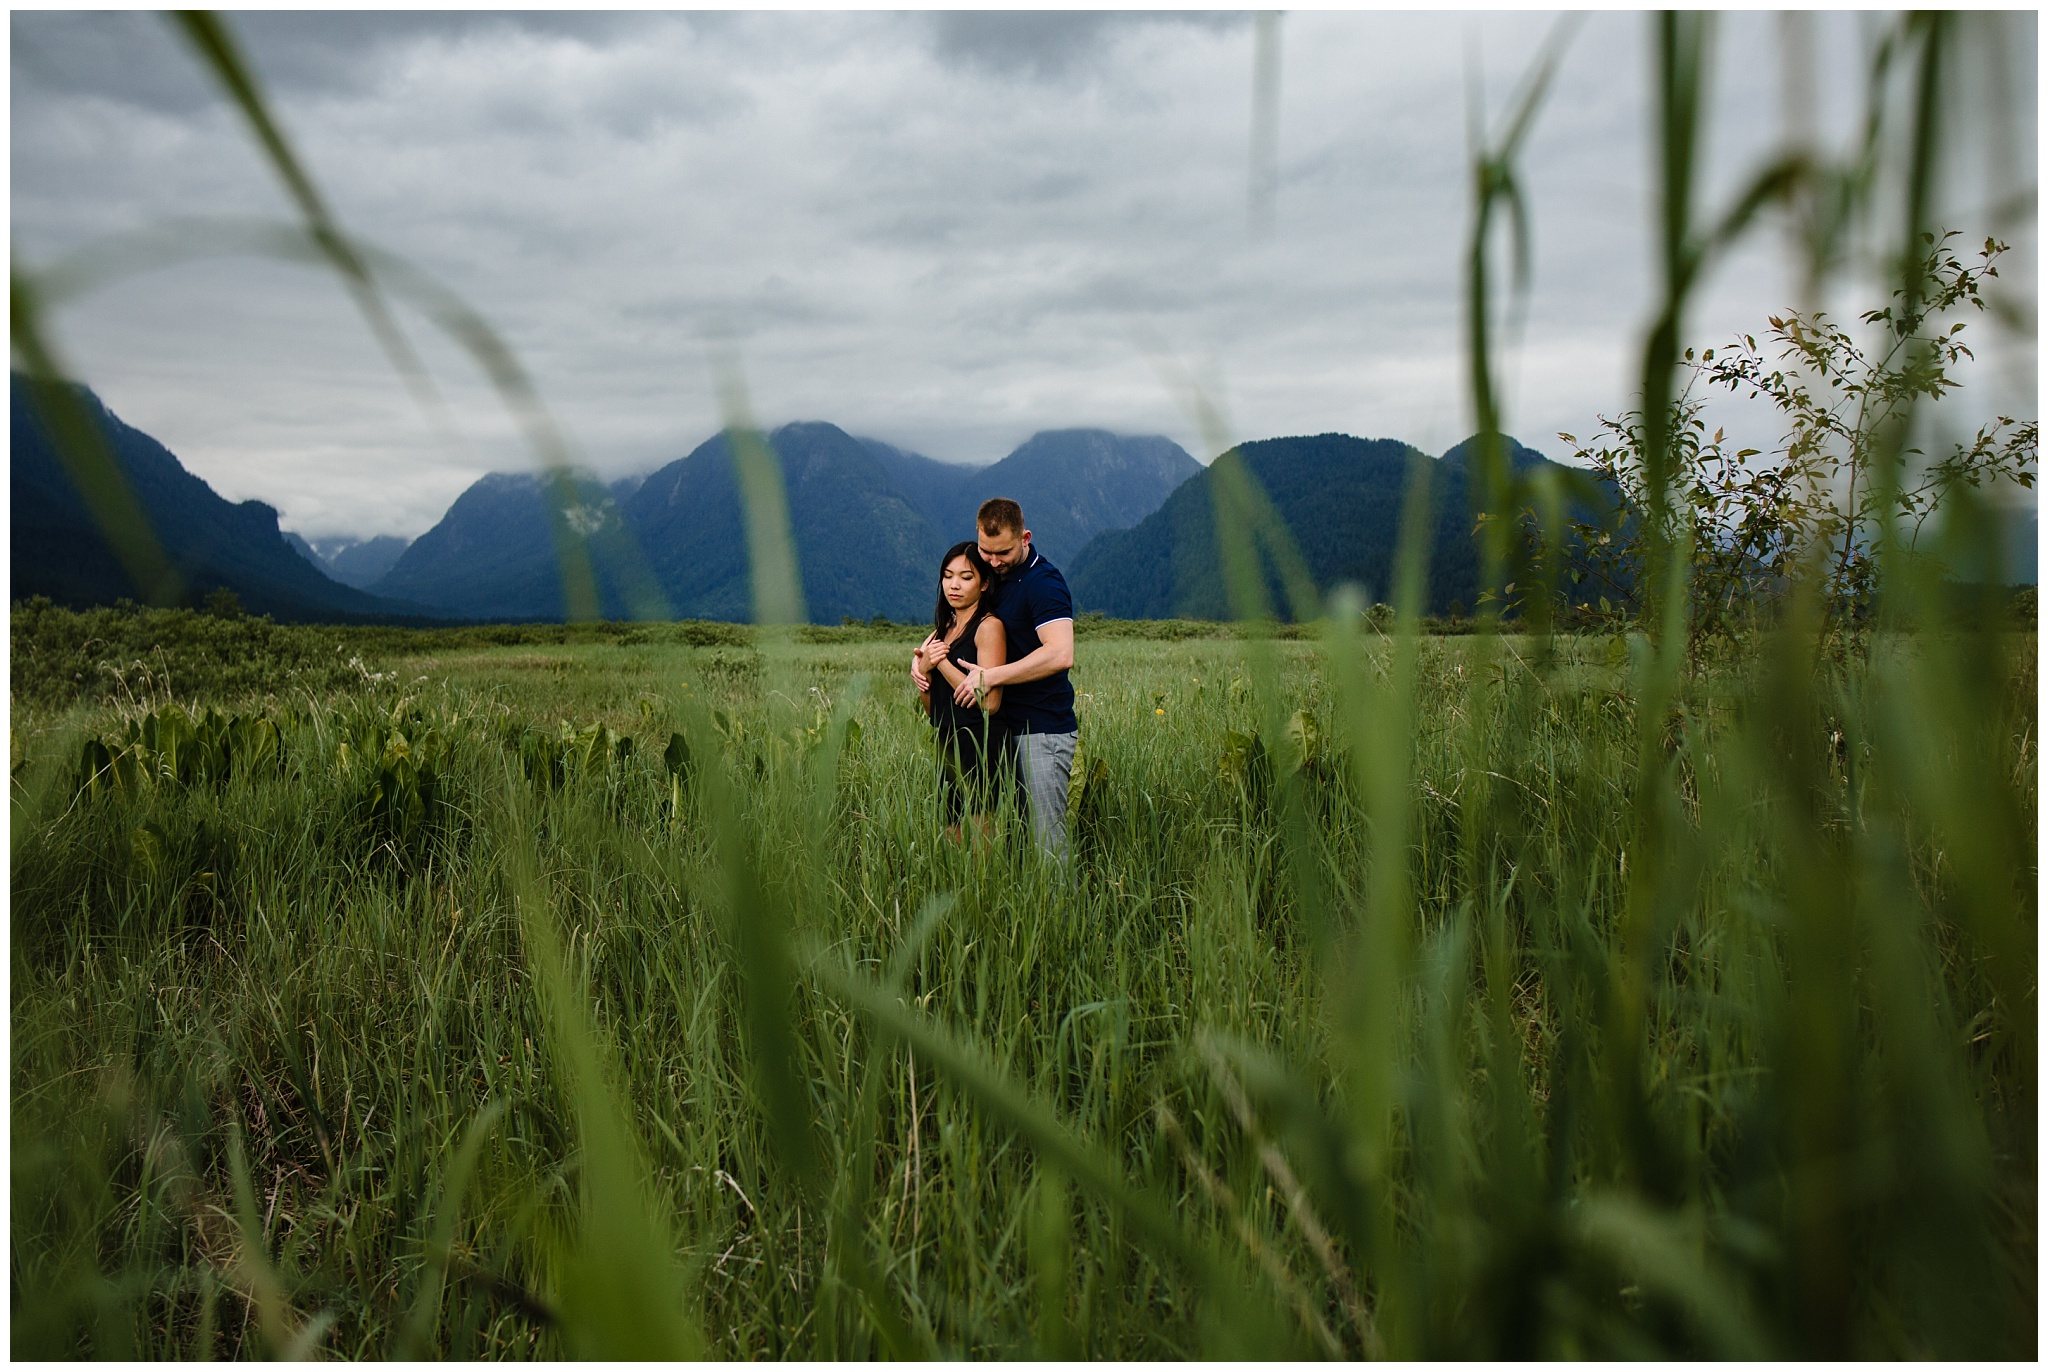 Pitt Lake Engagement Photos Maple Ridge Candid Fun Romantic Couples Photography_0004.jpg